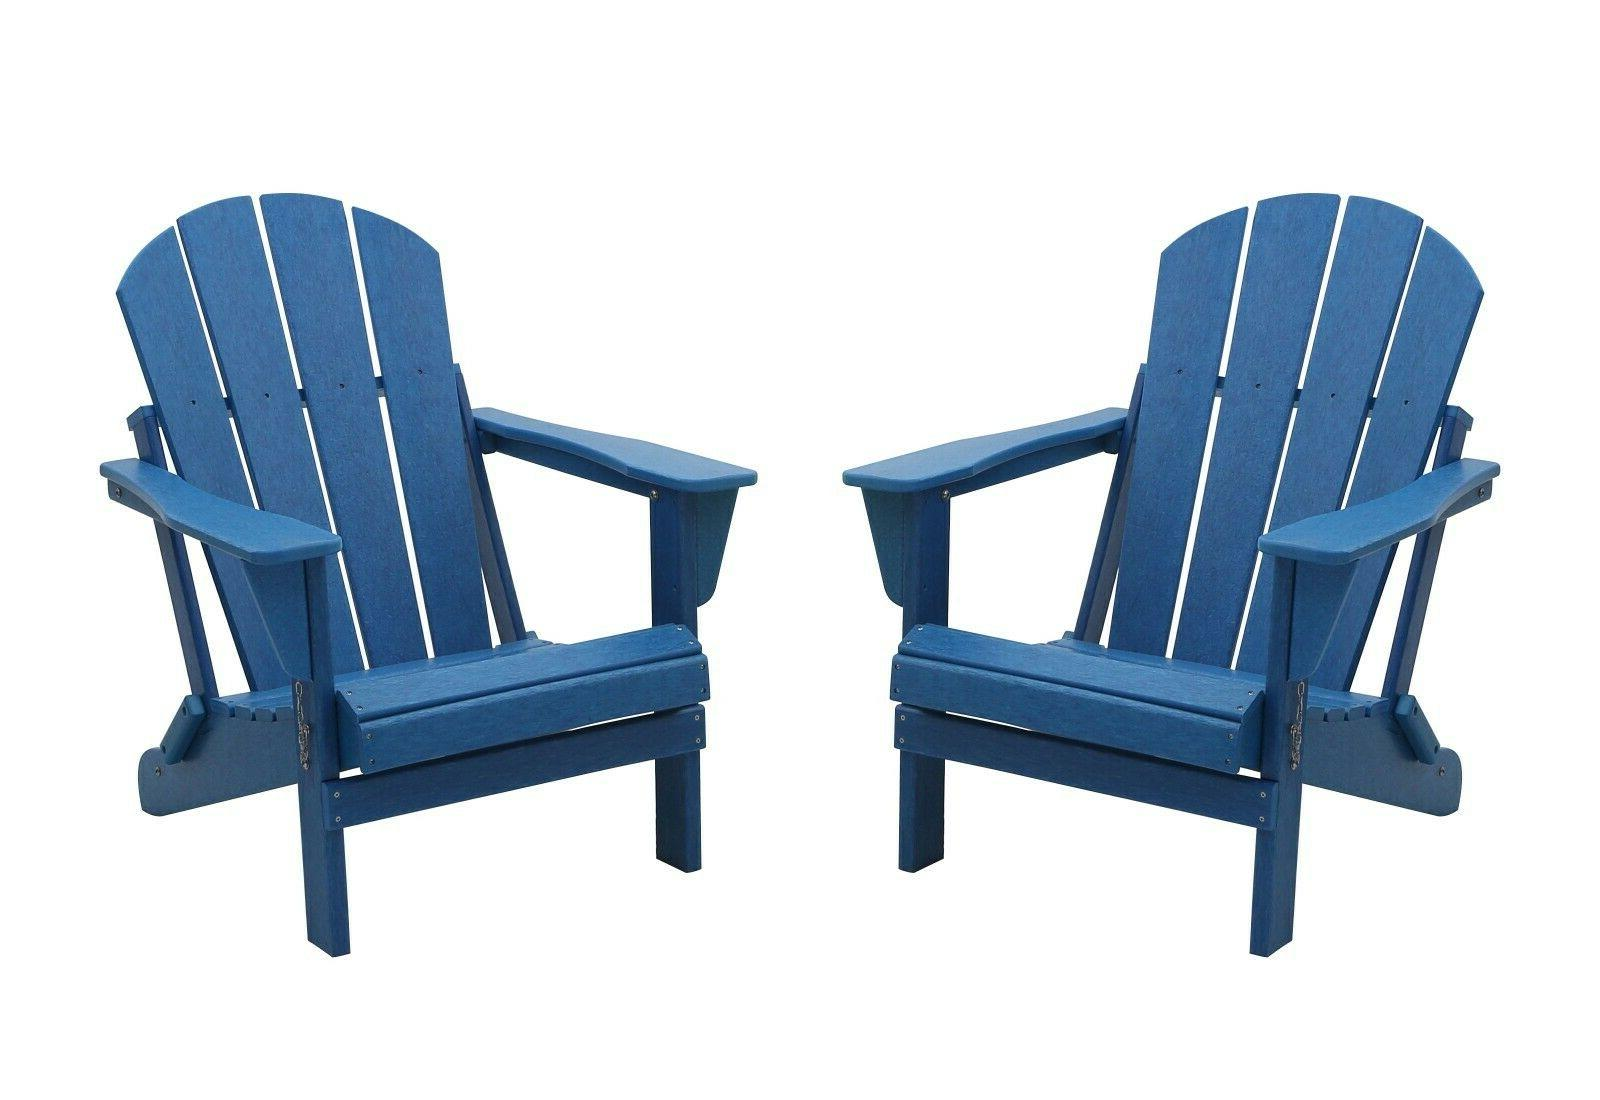 2 WestinTrends Folding Outdoor Patio Chairs